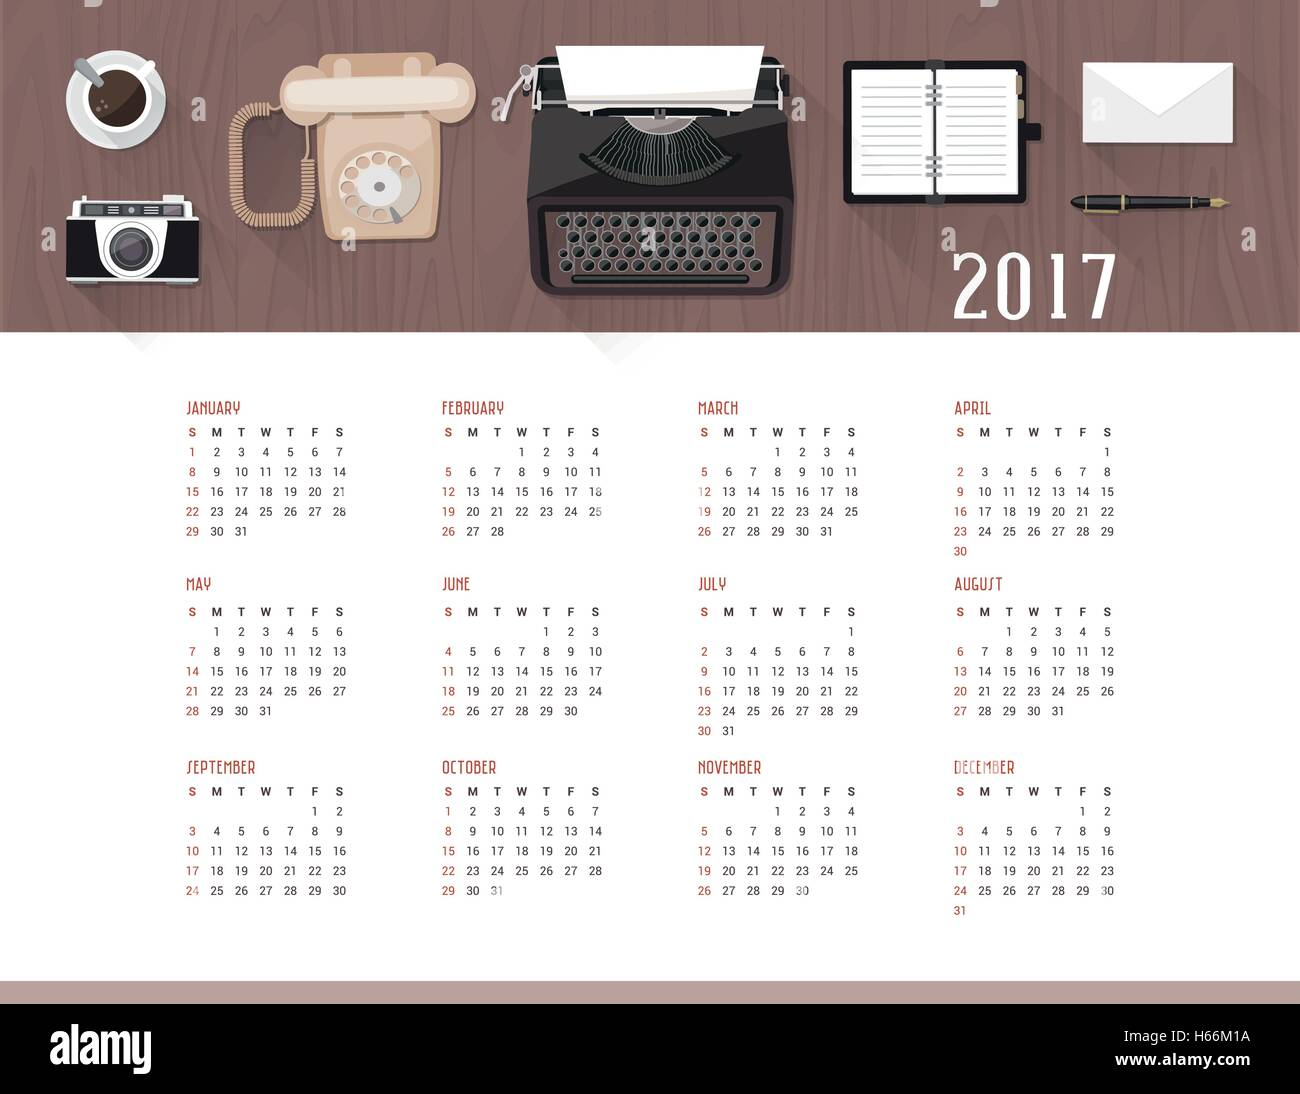 Calendario Business.Calendario Business 2017 Illustrazione Vettoriale 124307942